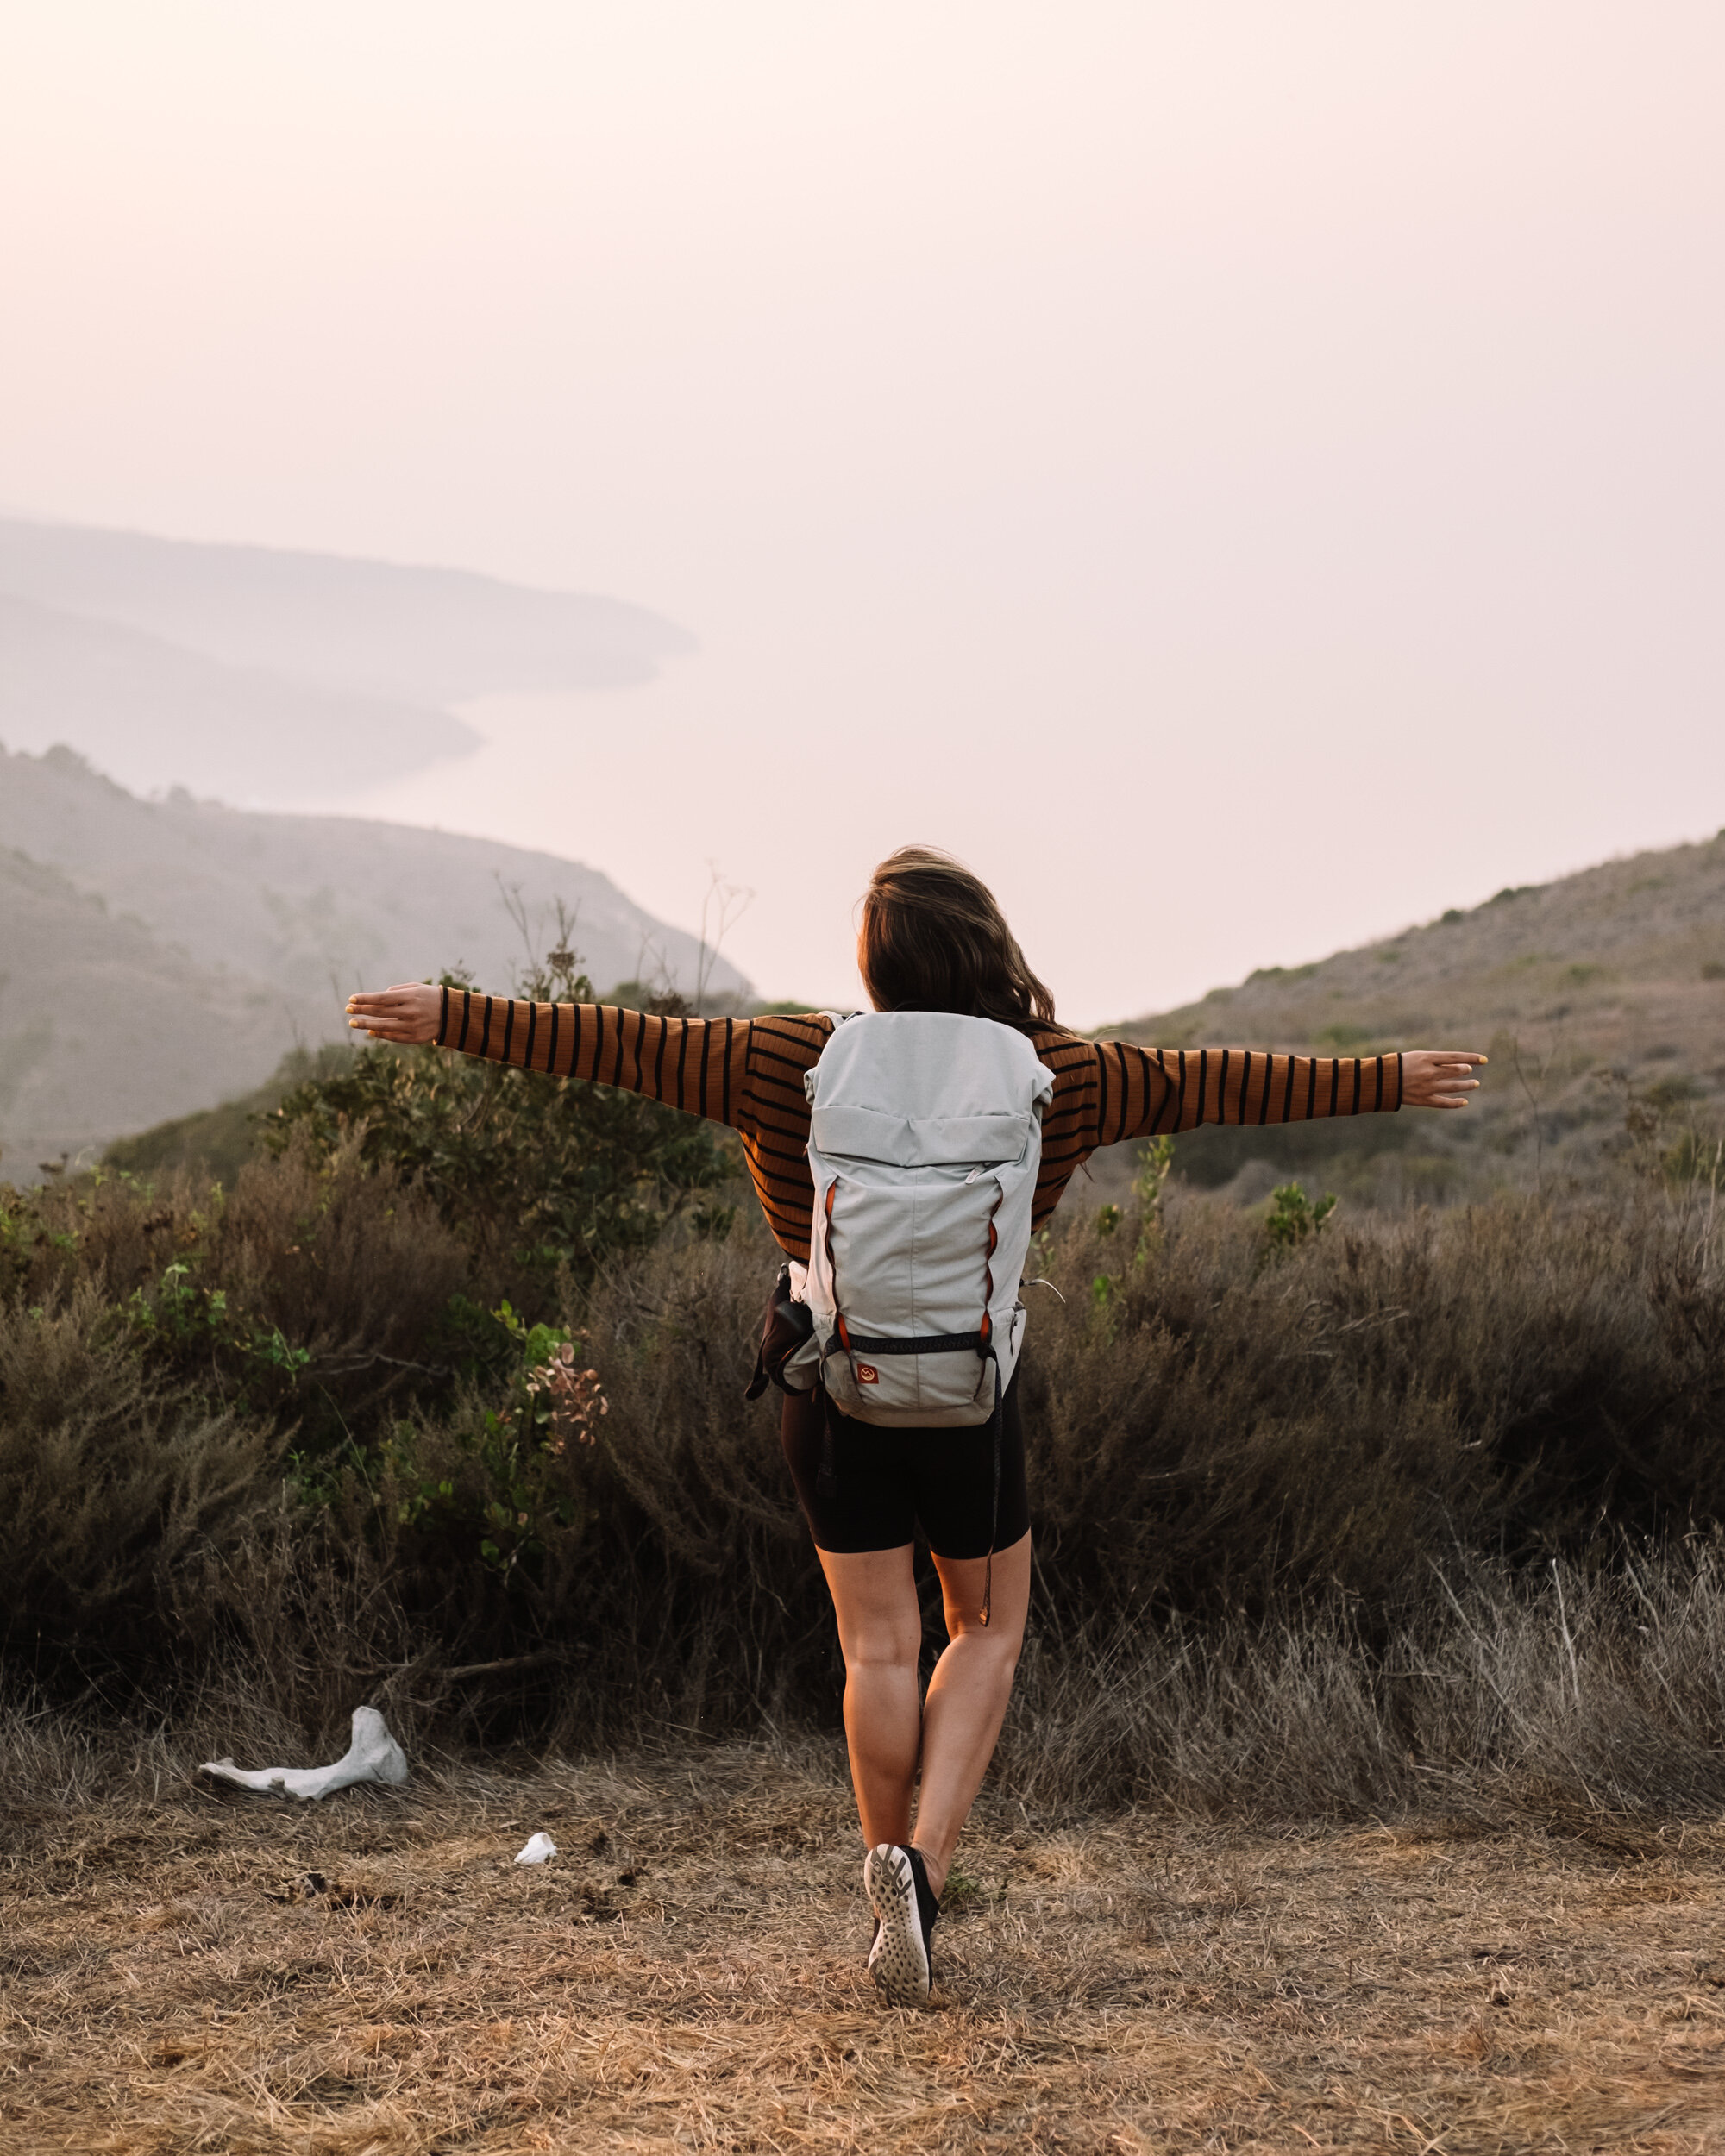 Rachel Off Duty: Girl with Backpack Admiring View in Channel Islands National Park